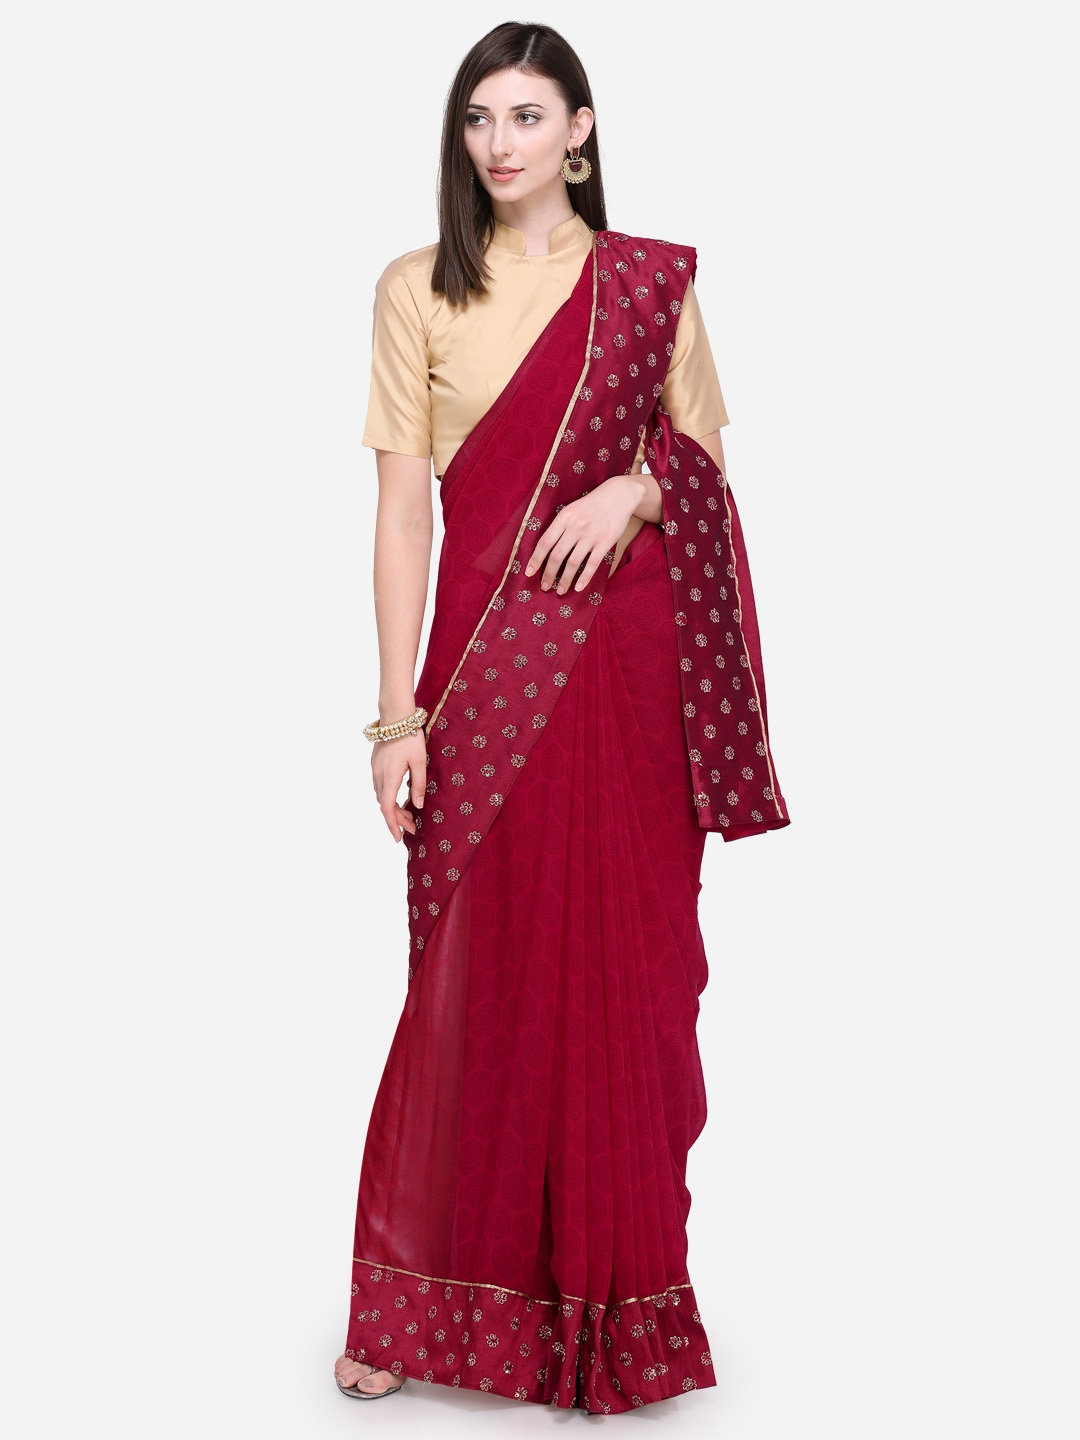 63f2a716fa8 Buy Triveni Maroon Printed Poly Georgette Saree - Sarees for Women ...